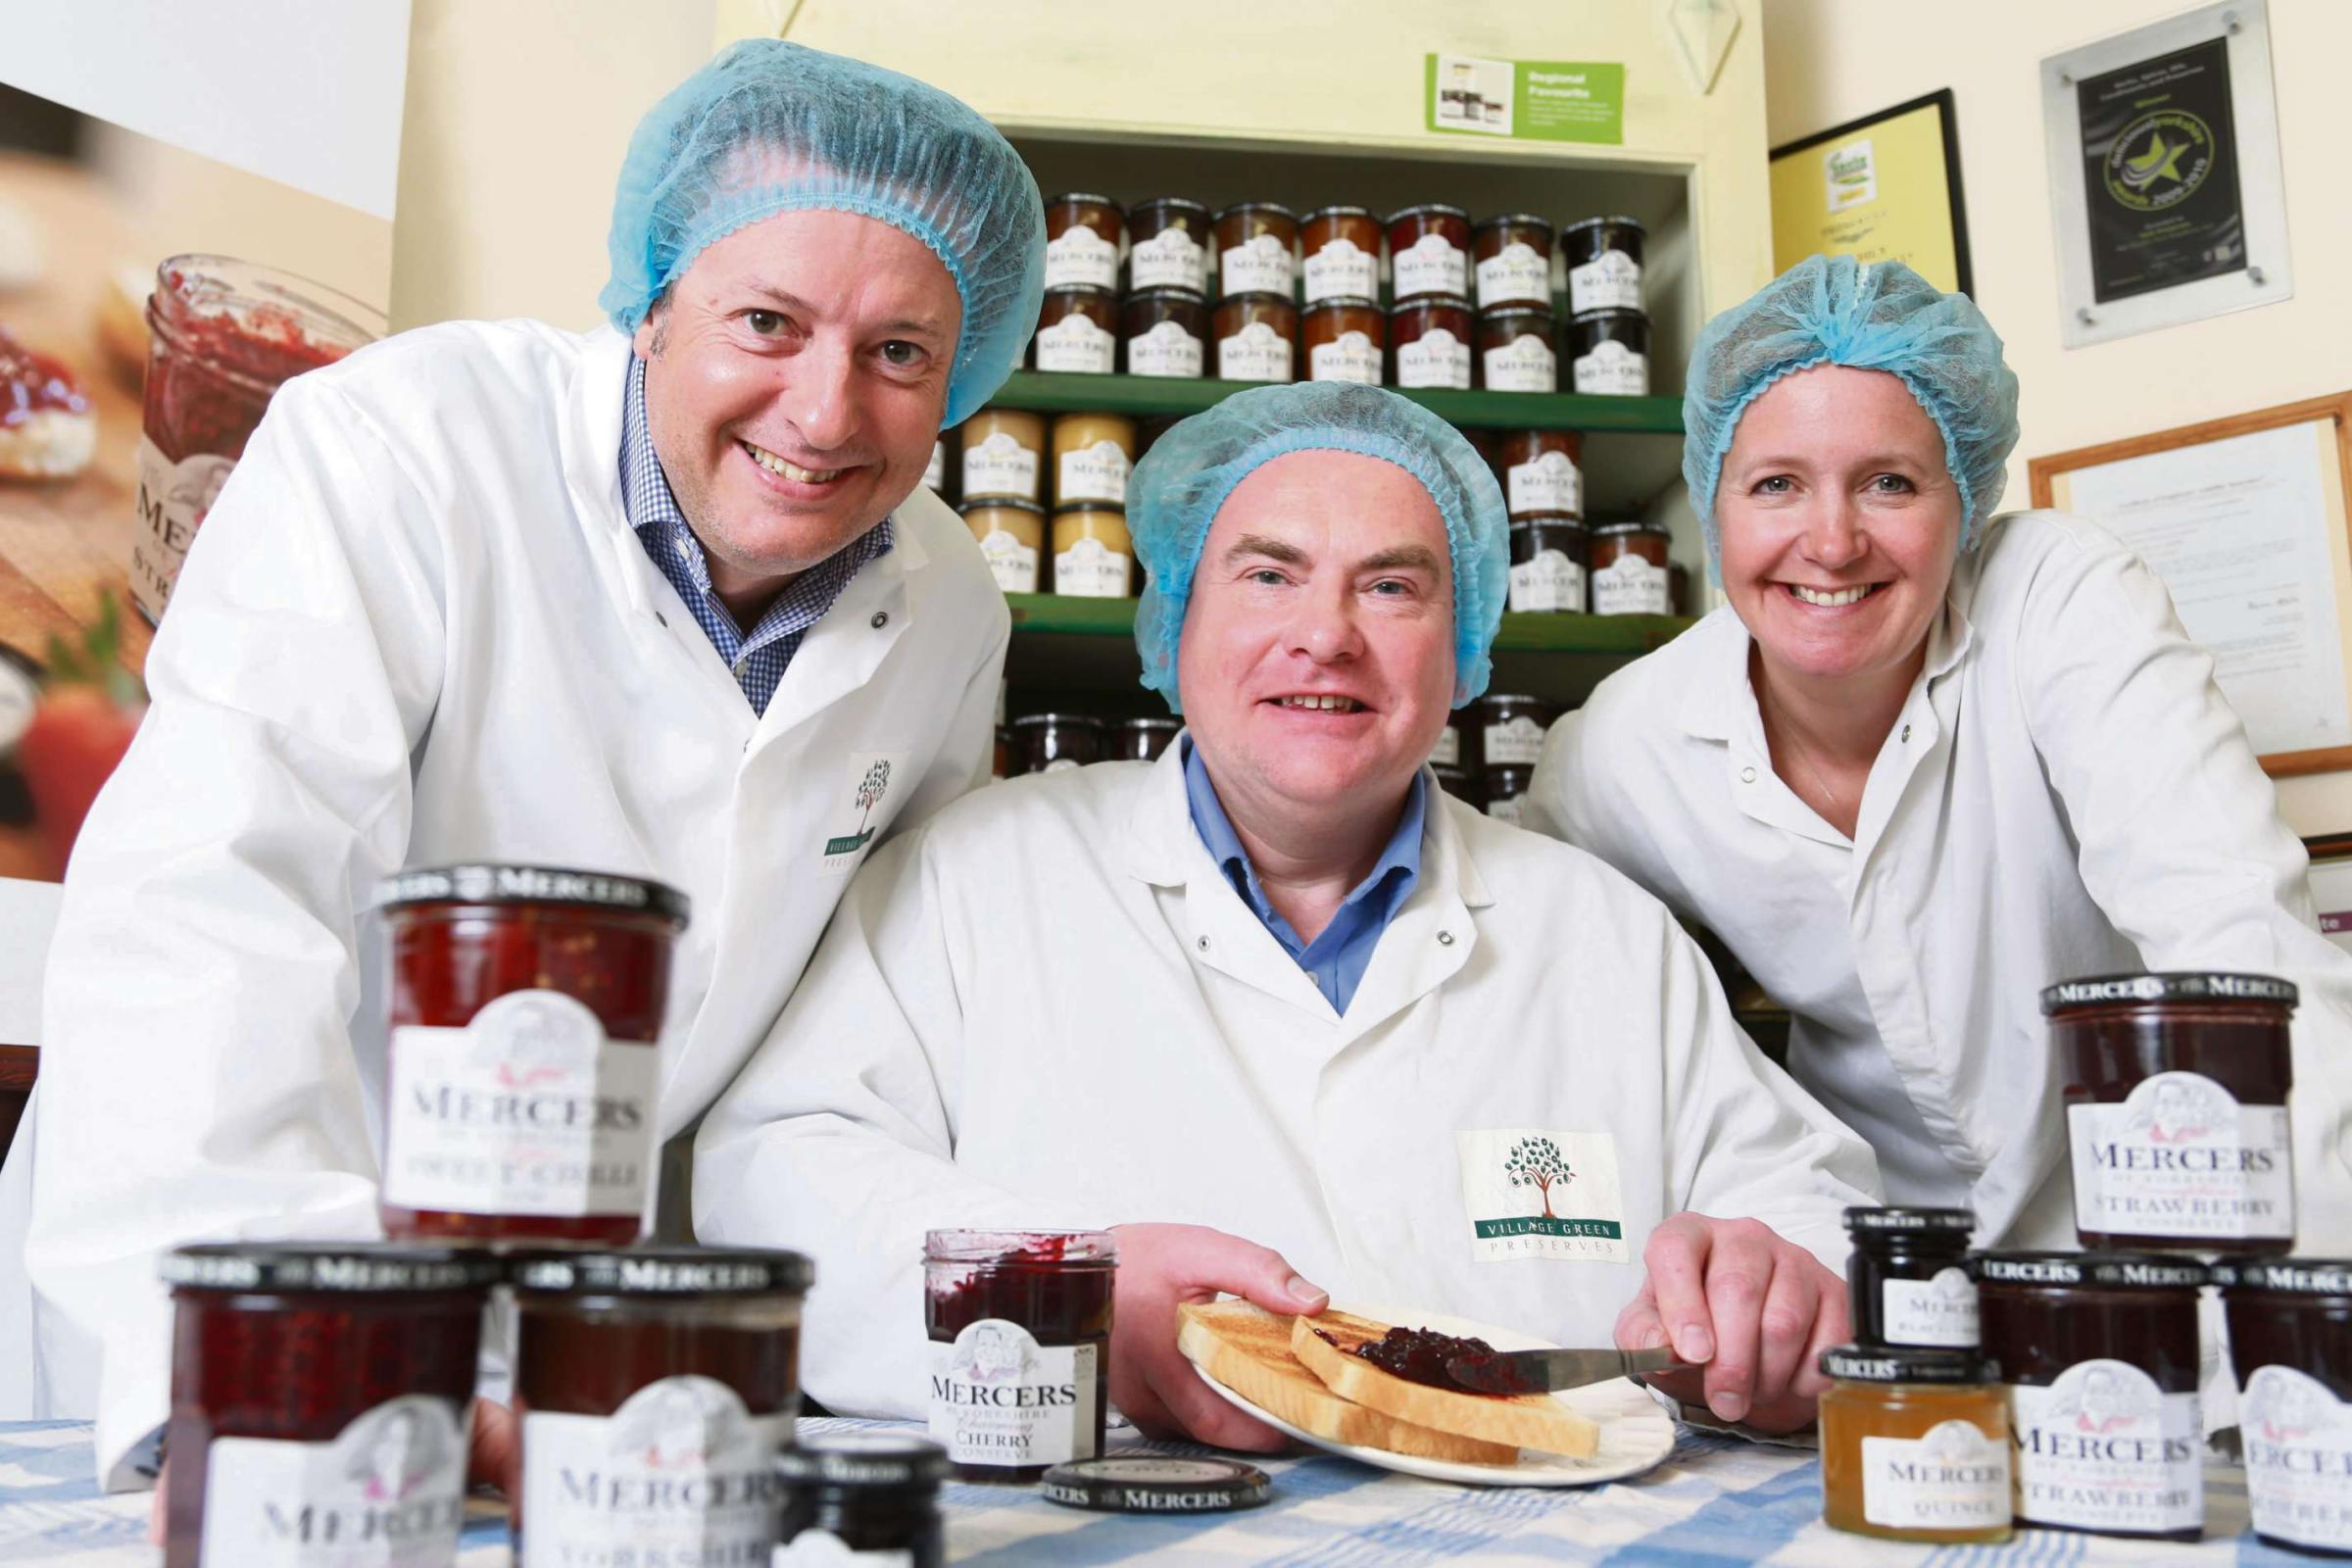 SERVING SUCCESS: Andrew Nicholson, centre, with Paul and Lizzie Mercer, from York Speciality Foods